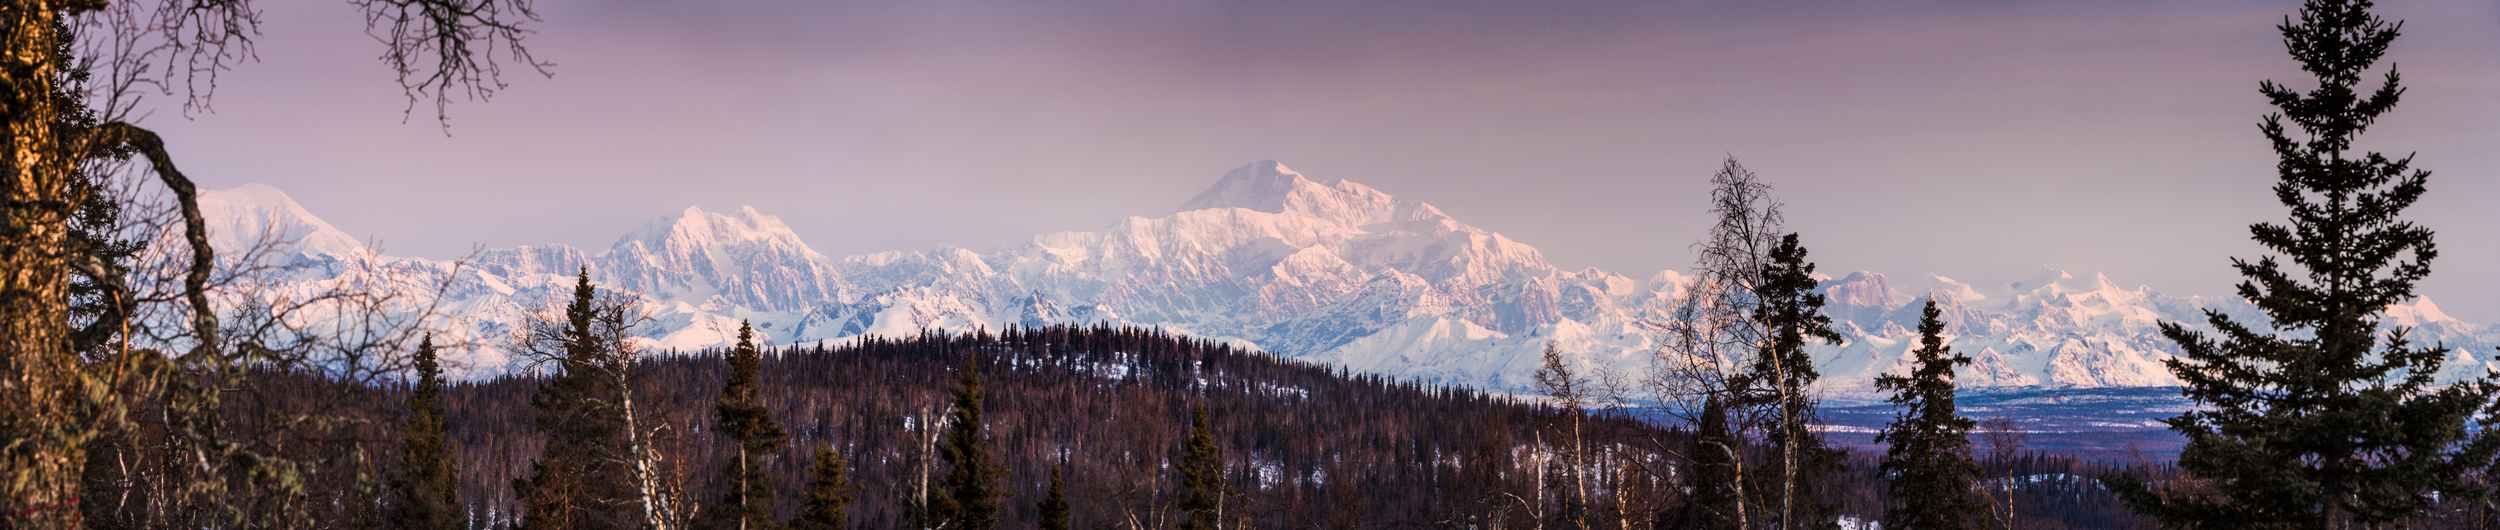 Denali+from+Karl+%26+Mary%27s+cabi-2757028508-O.jpg